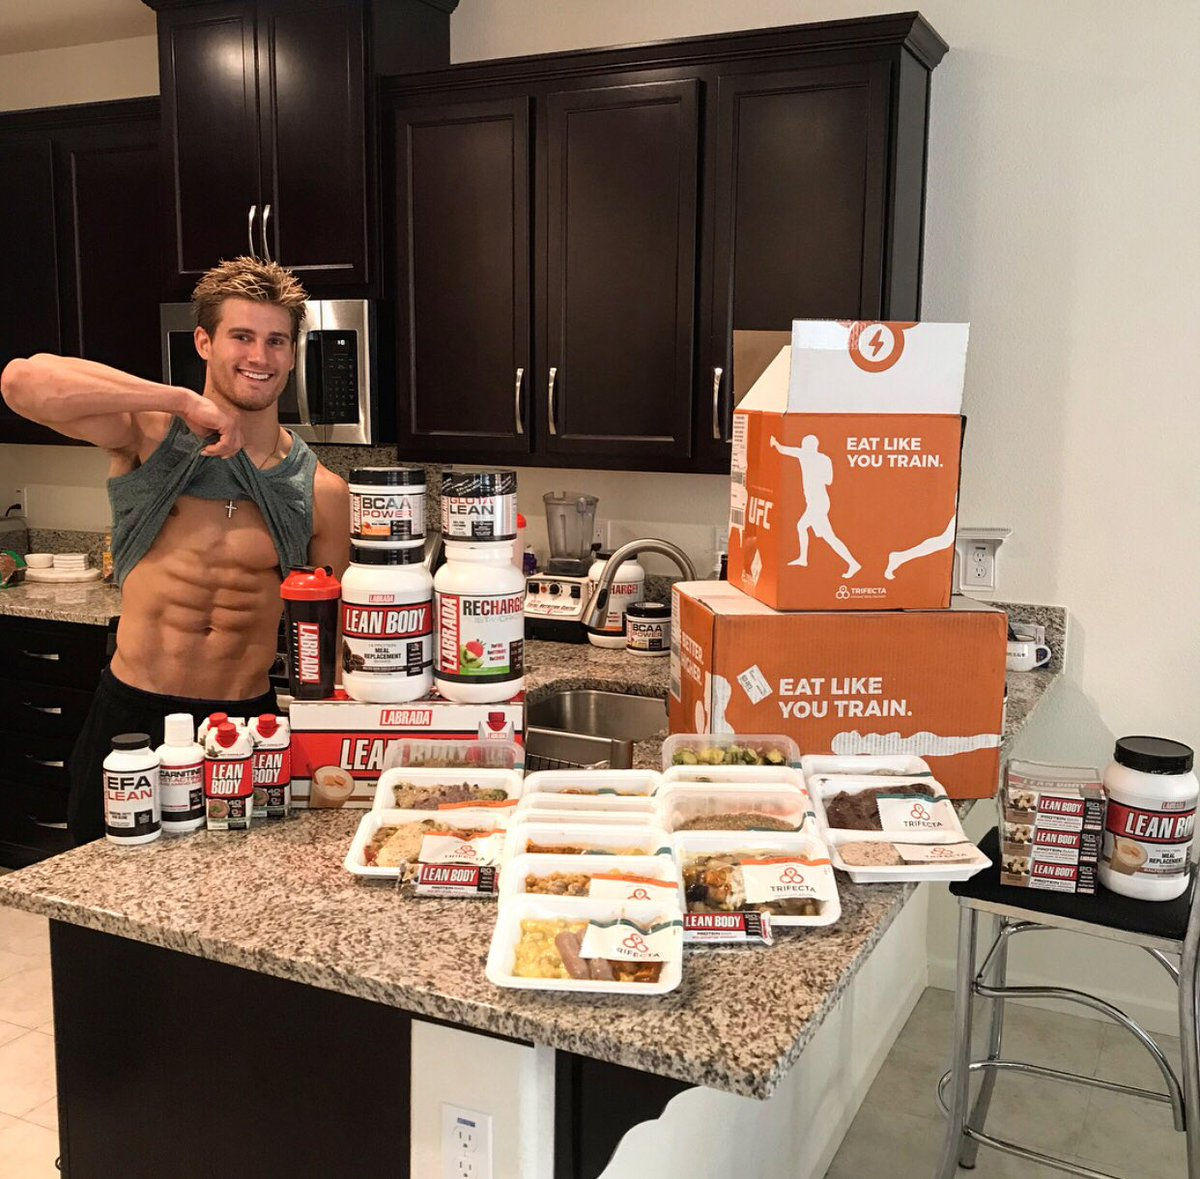 Just want to say thanks to my sponsors @Labrada_NTRN and @TrifectaSystem for keeping me strong and healthy!